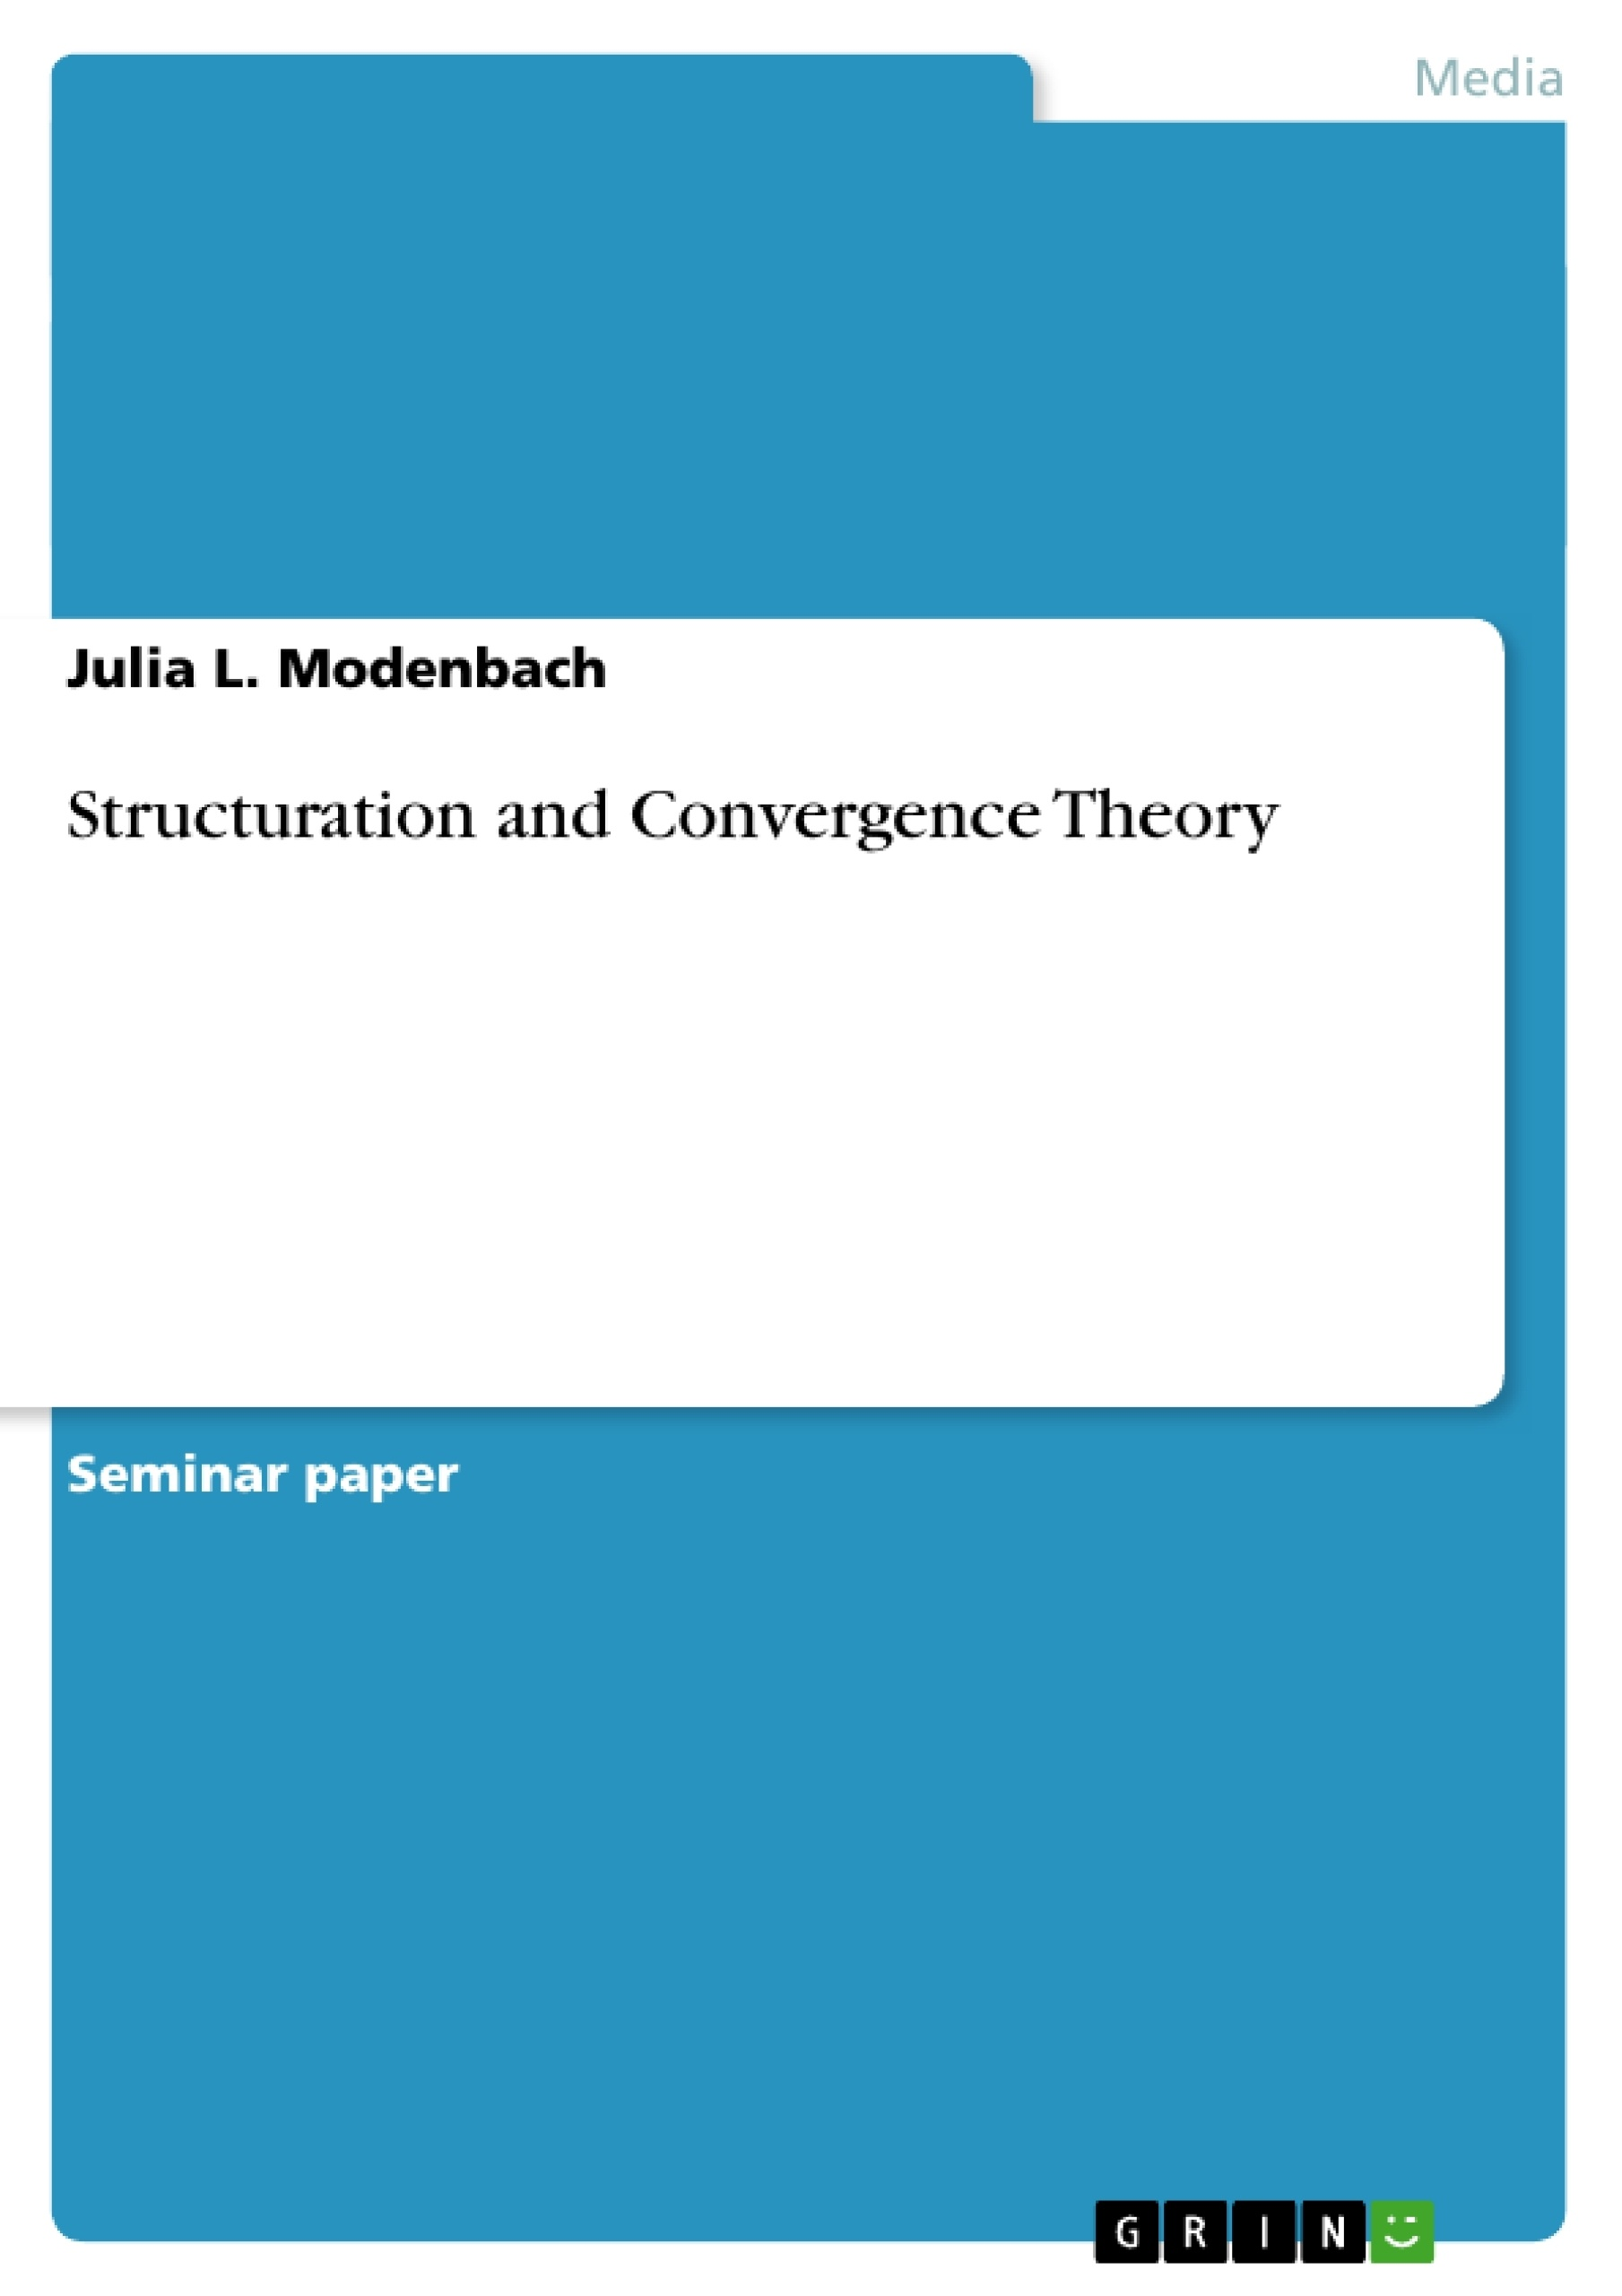 Title: Structuration and Convergence Theory